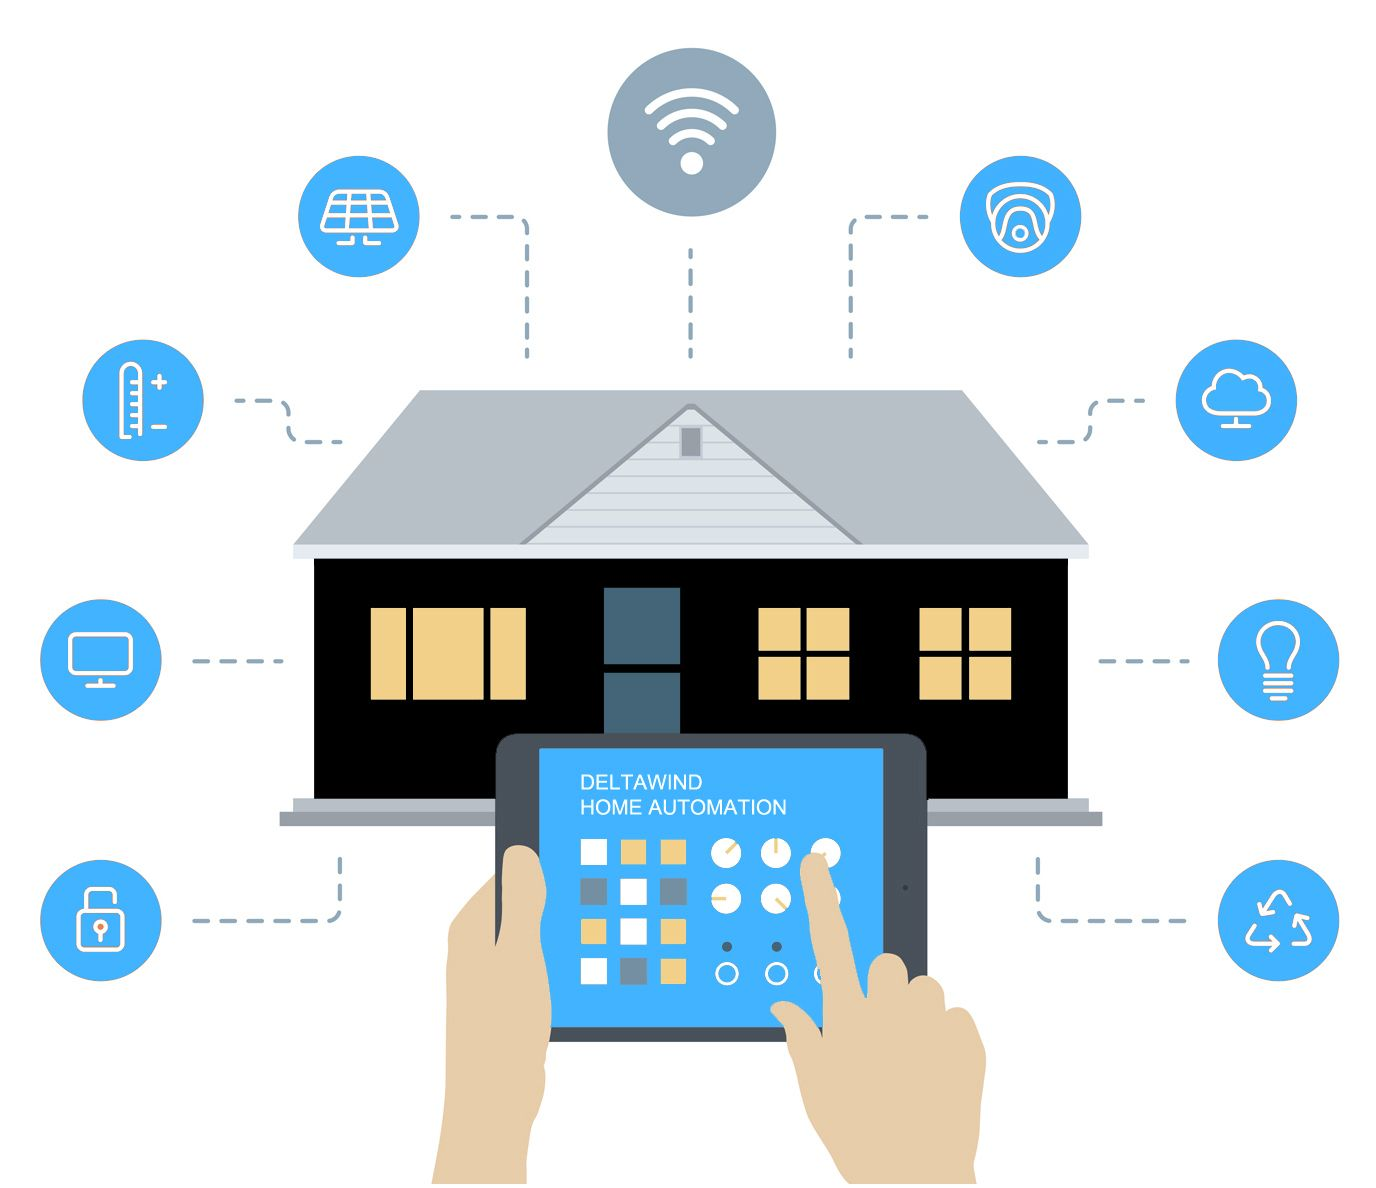 DELTAWIND HOME AUTOMATION